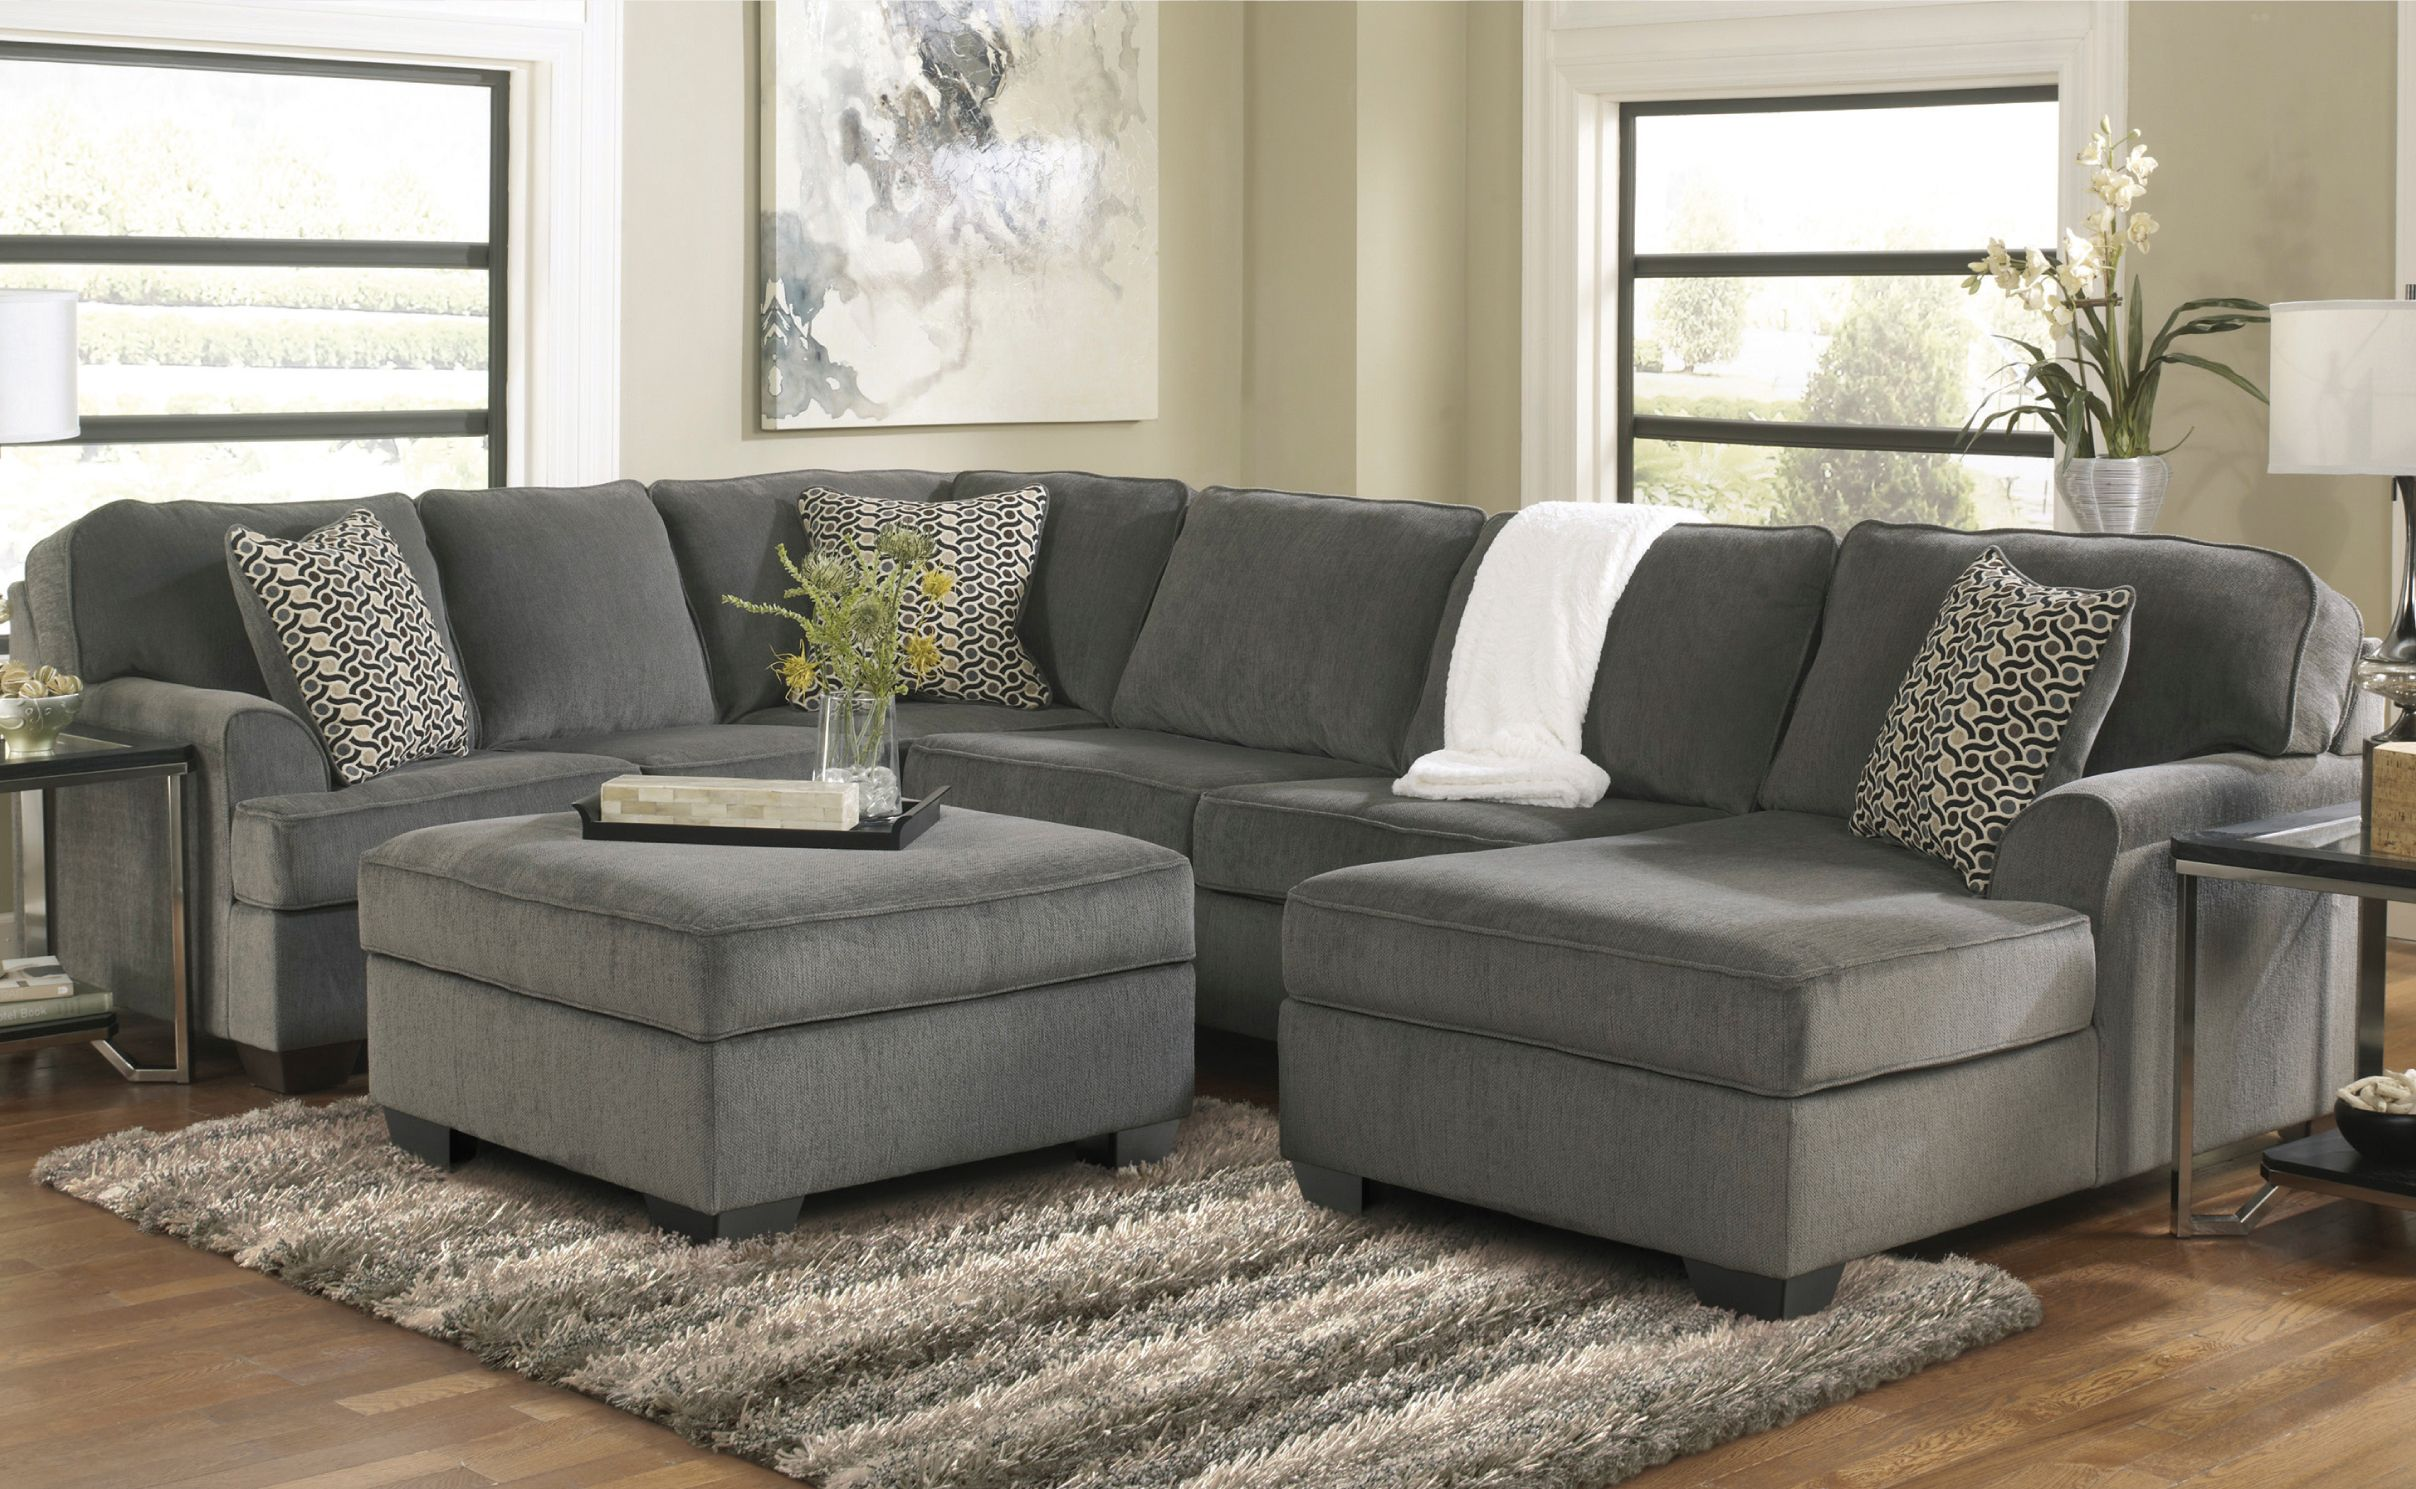 Sectional Sofa Clearance American Home Furniture Cheap Living Room Sets Furniture